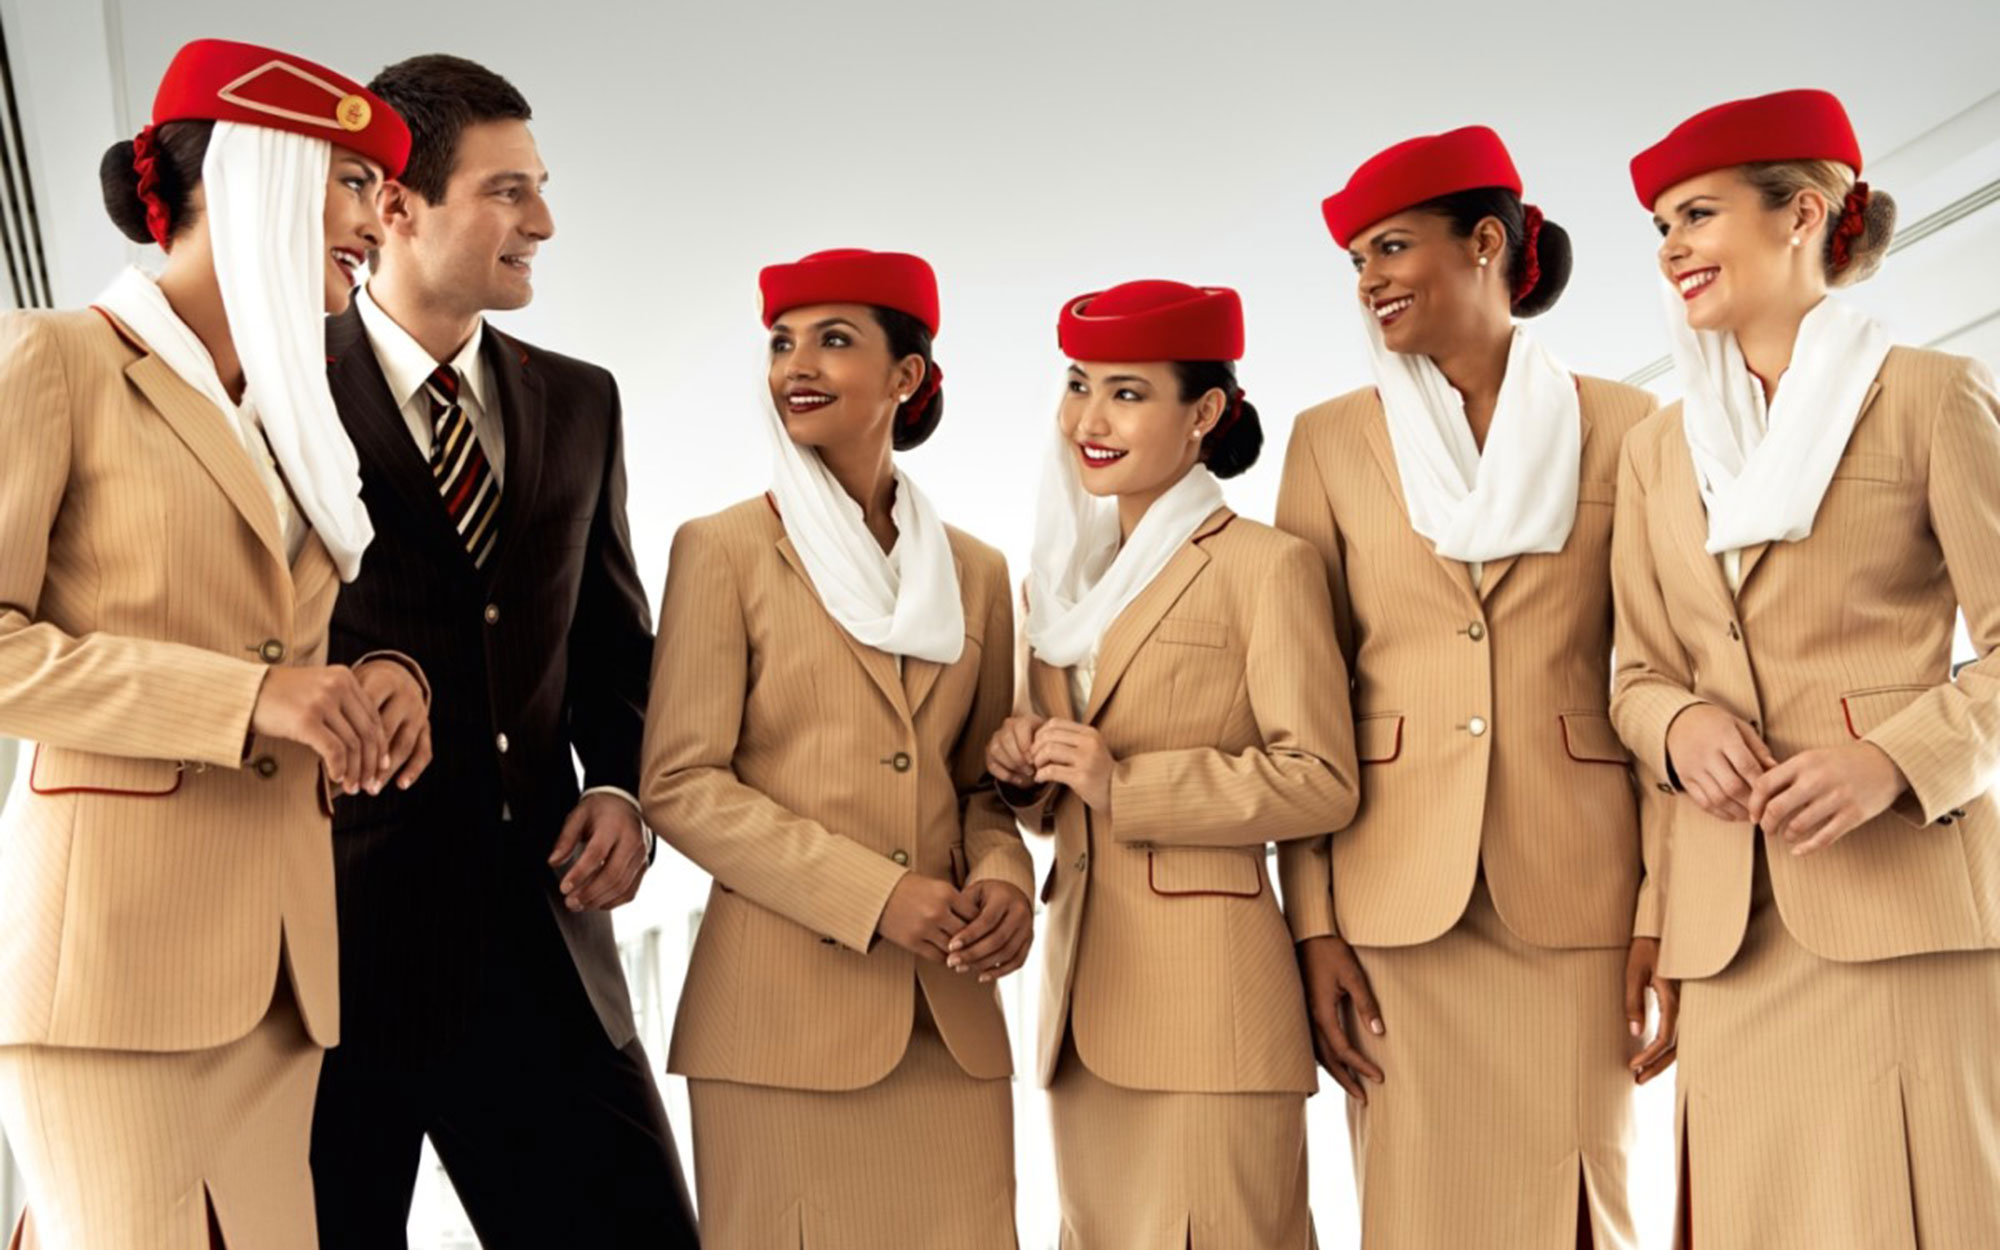 World's Best Airlines for Customer Service: Emirates, International